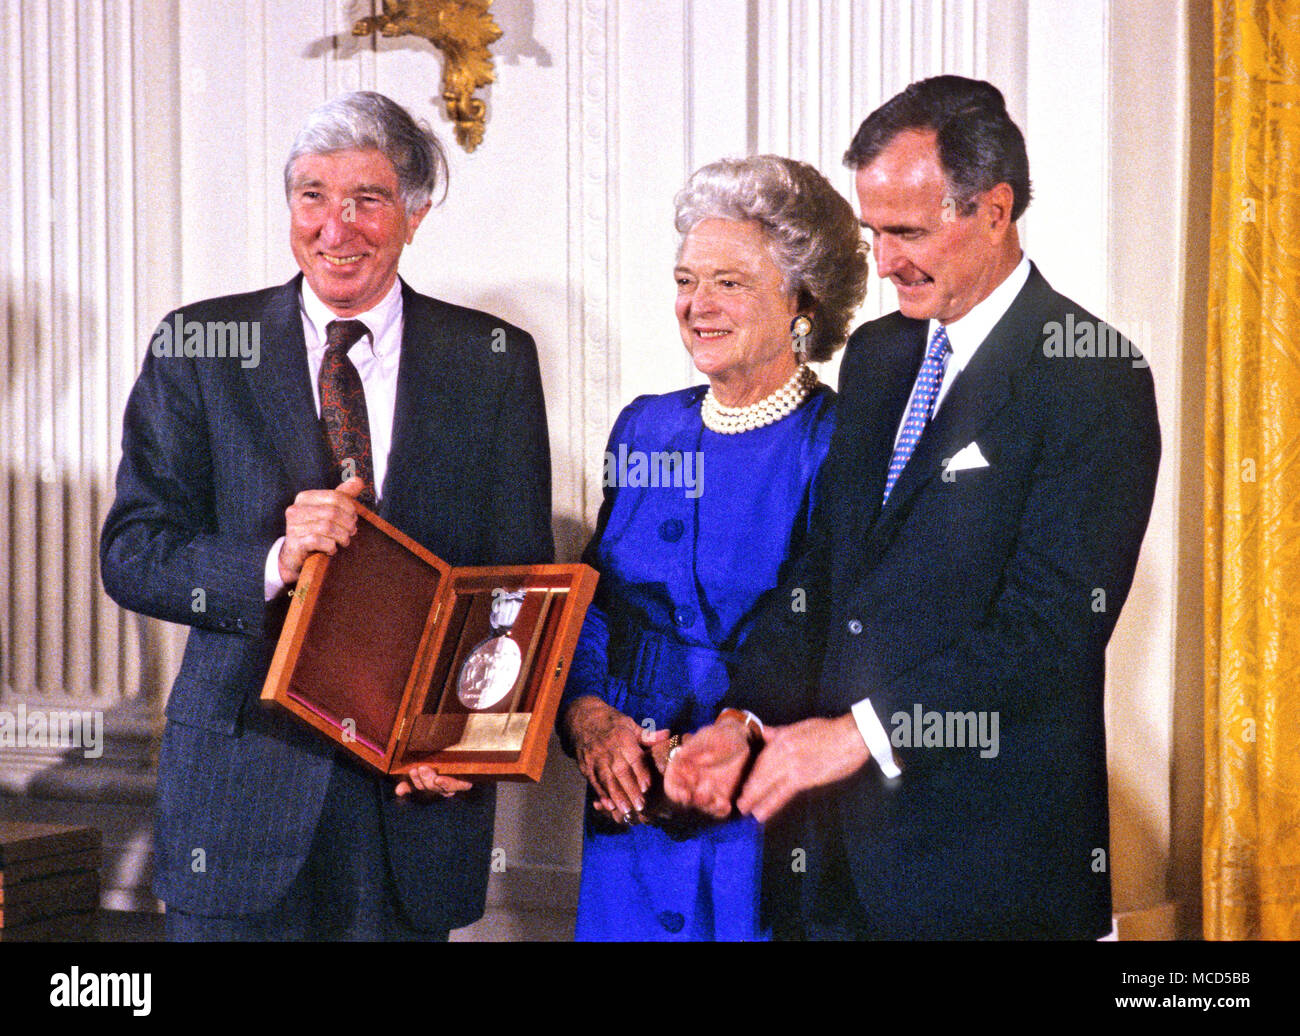 United States President George H.W. Bush and first lady Barbara Bush present the National Medal of Arts to American novelist, poet, short story writer, art critic, and literary critic John Updike during a ceremony in the East Room of the White House in Washington, DC on November 19, 1989. Credit: Ron Sachs/CNP /MediaPunch - Stock Image